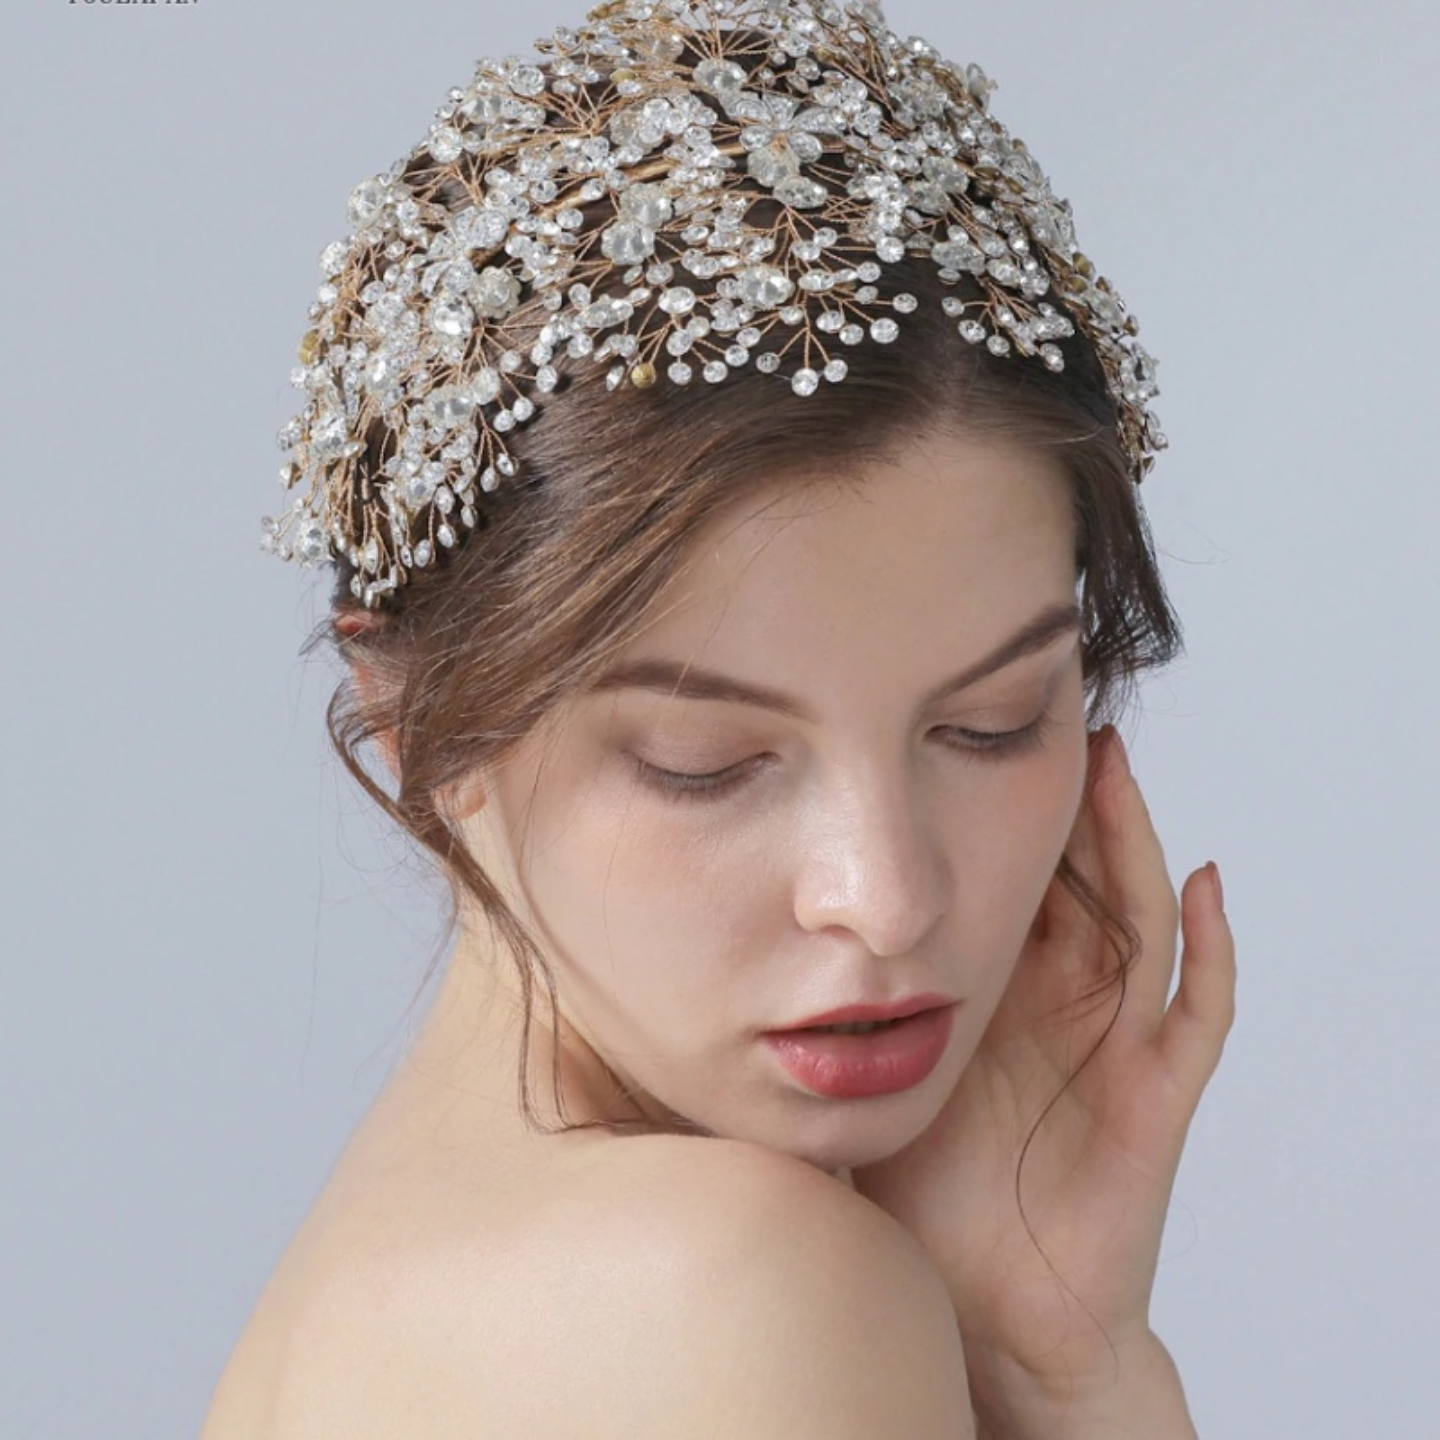 Bride Crystal Wedding  Tiara